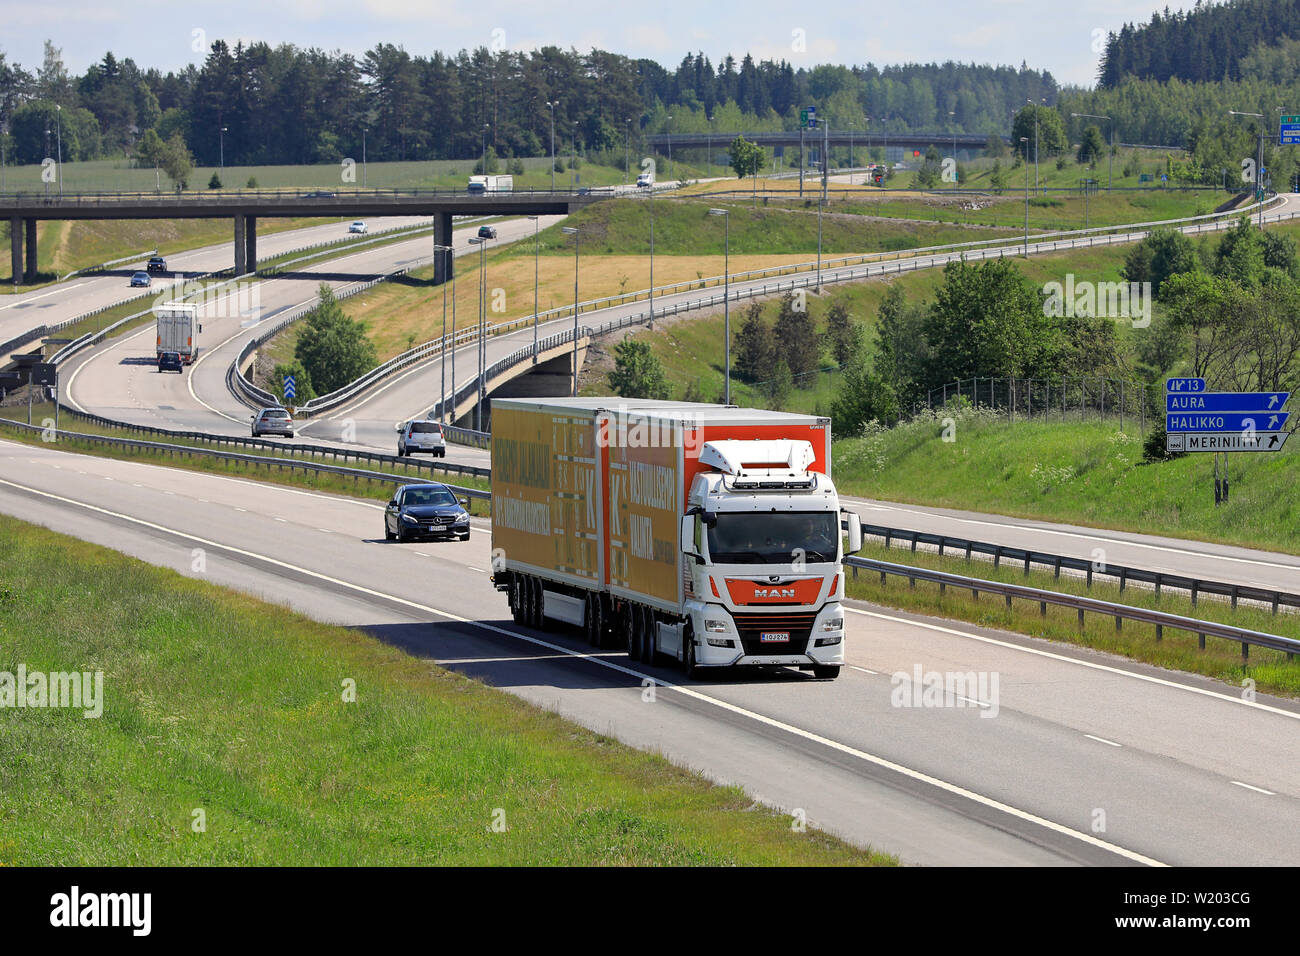 Interstate 580 Stock Photos & Interstate 580 Stock Images - Alamy